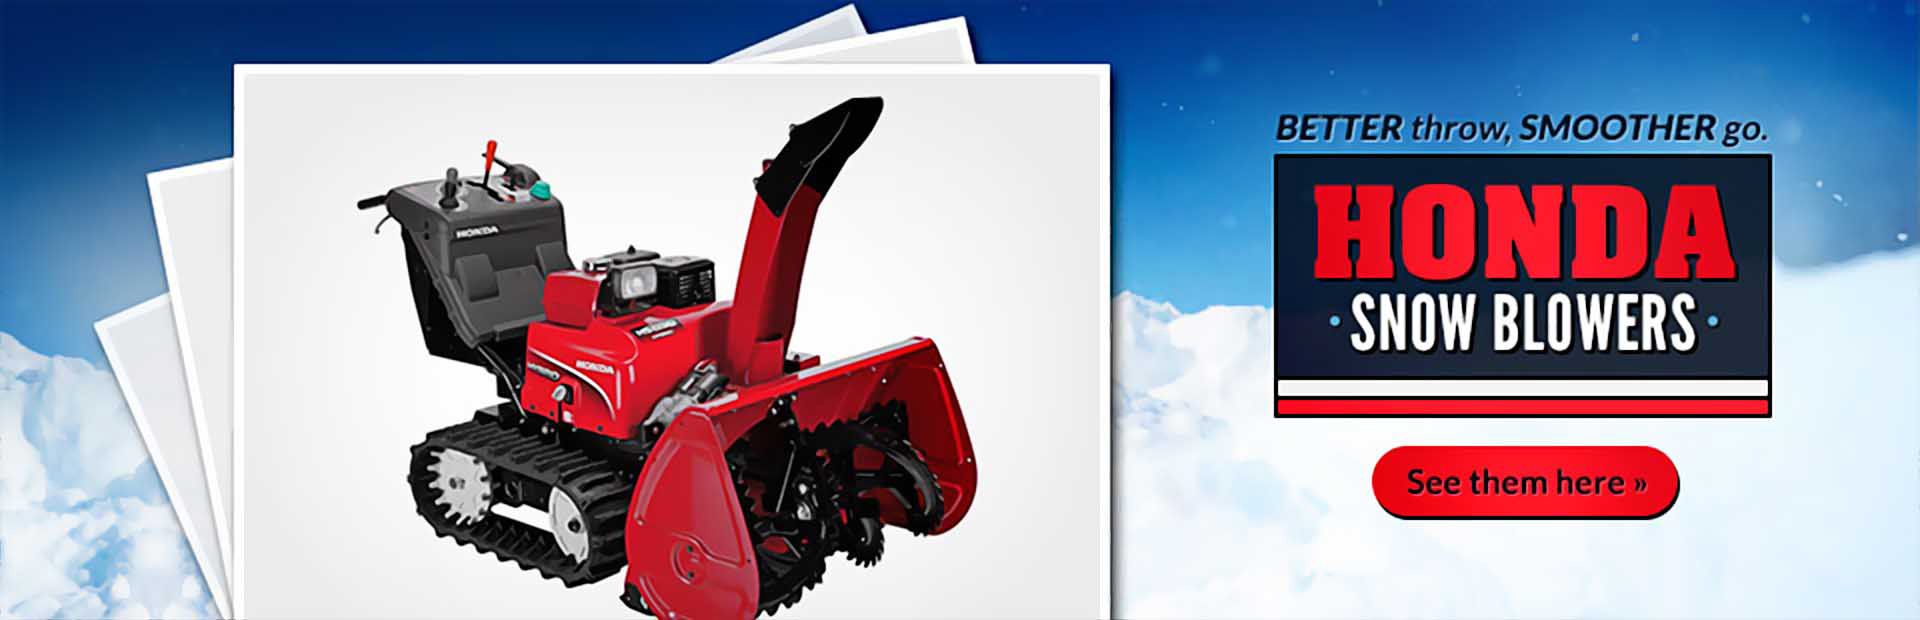 Honda Snow Blowers: Click here to view the models.